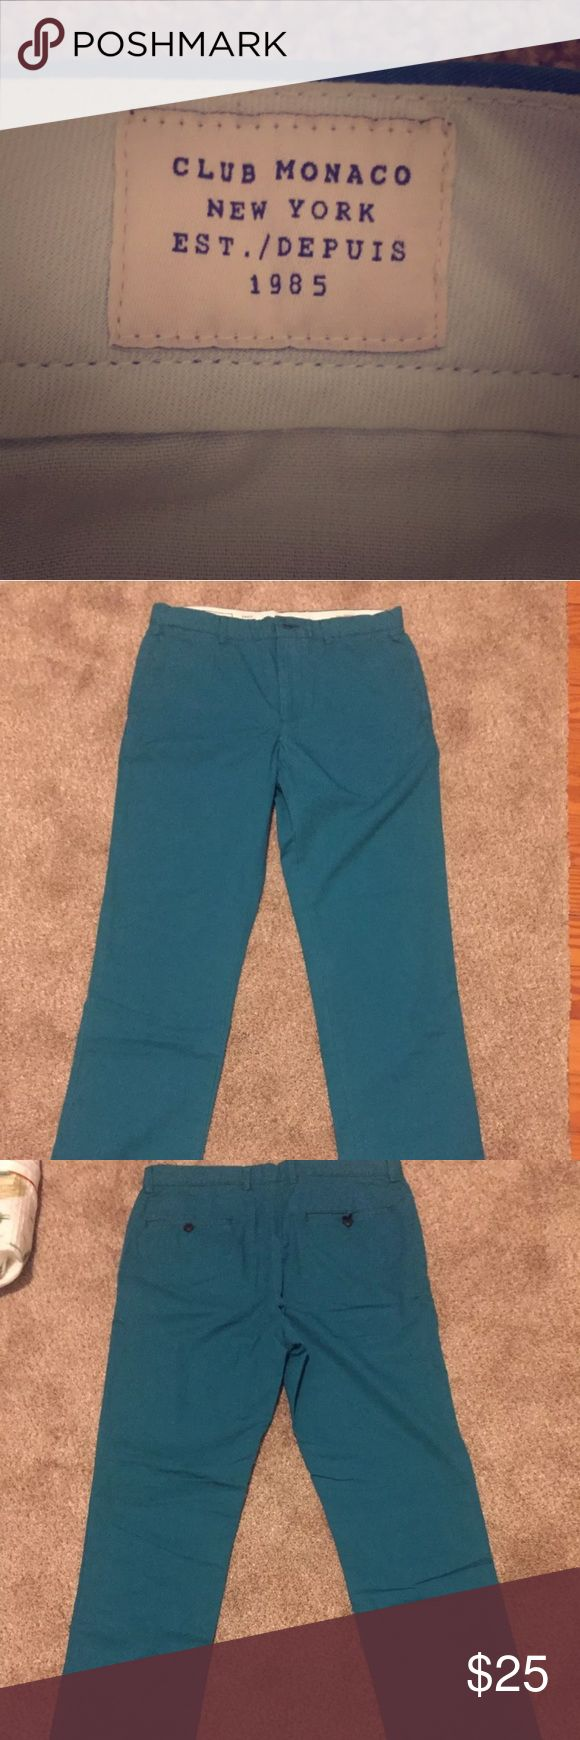 Club Monaco men's slim fit Chino Khakis Club Monaco 100% cotton slim fit green flat front chino khakis 30x32. These pants are in amazing condition and have only been worn a few times. There are no stains, rips, or any signs of wear at all. These could pass for brand new. Super comfortable as well Club Monaco Pants Chinos & Khakis